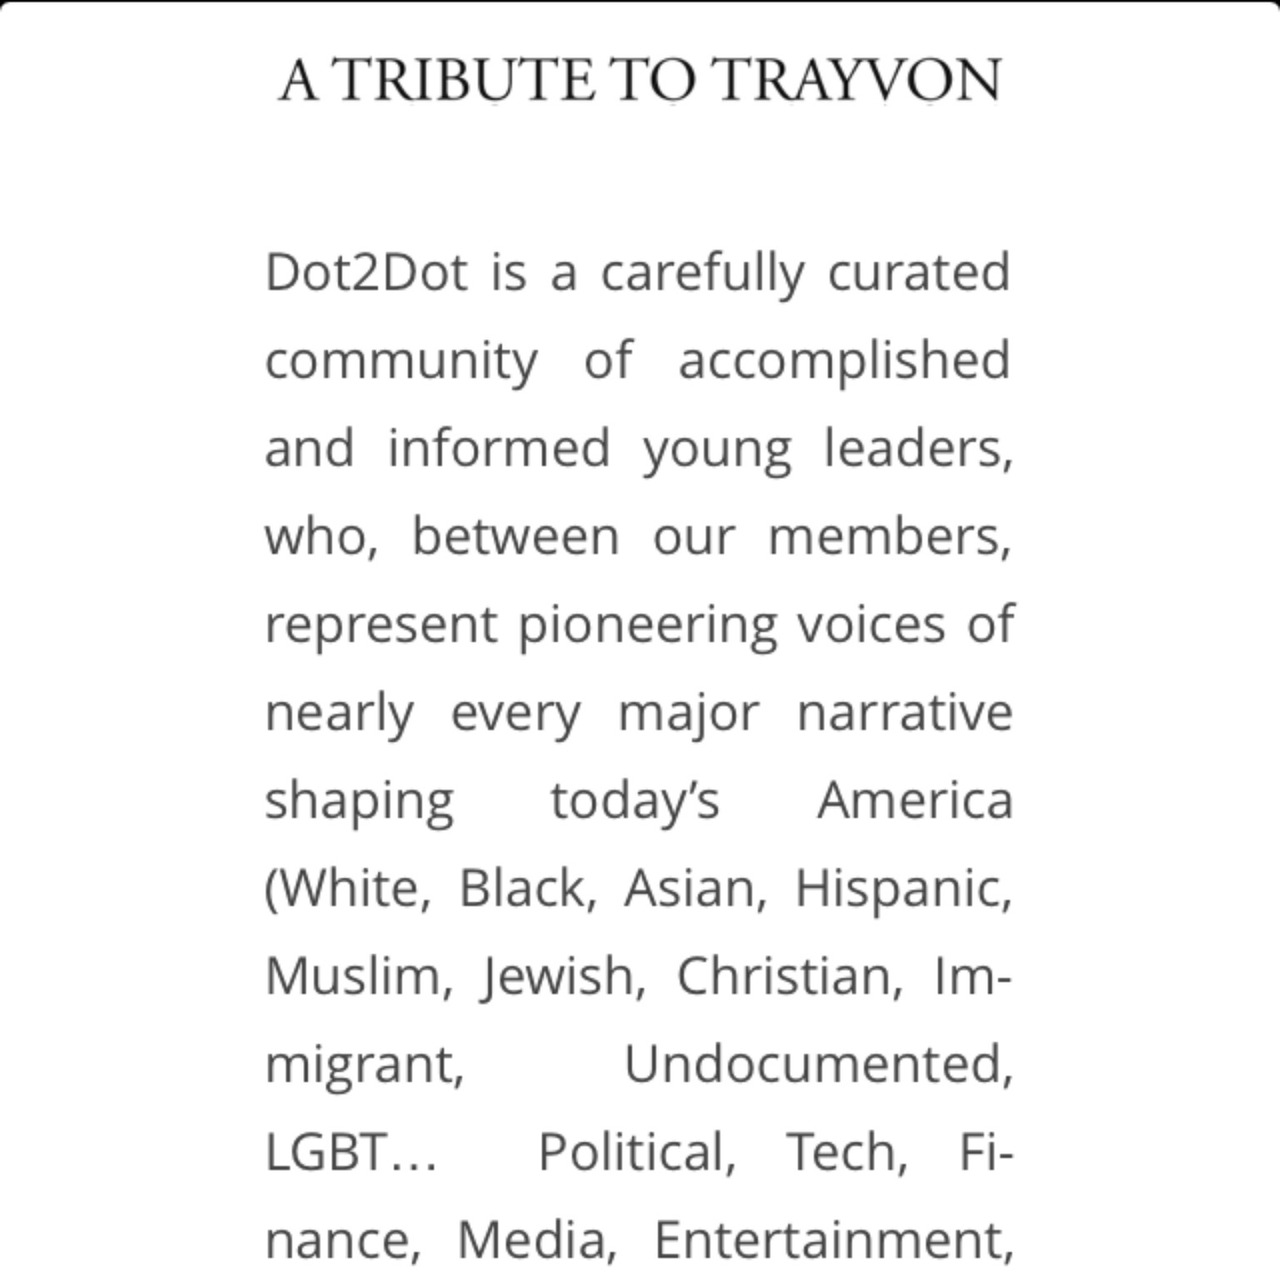 Visit  http://dot2dot.us  a tribute to #TrayvonMartin by an amazing group of people with David, Nia, Nicole, Ramy, Jenna, Jeremy, Amanda, Rachel, Mike, May, and Michael – View on  Path .